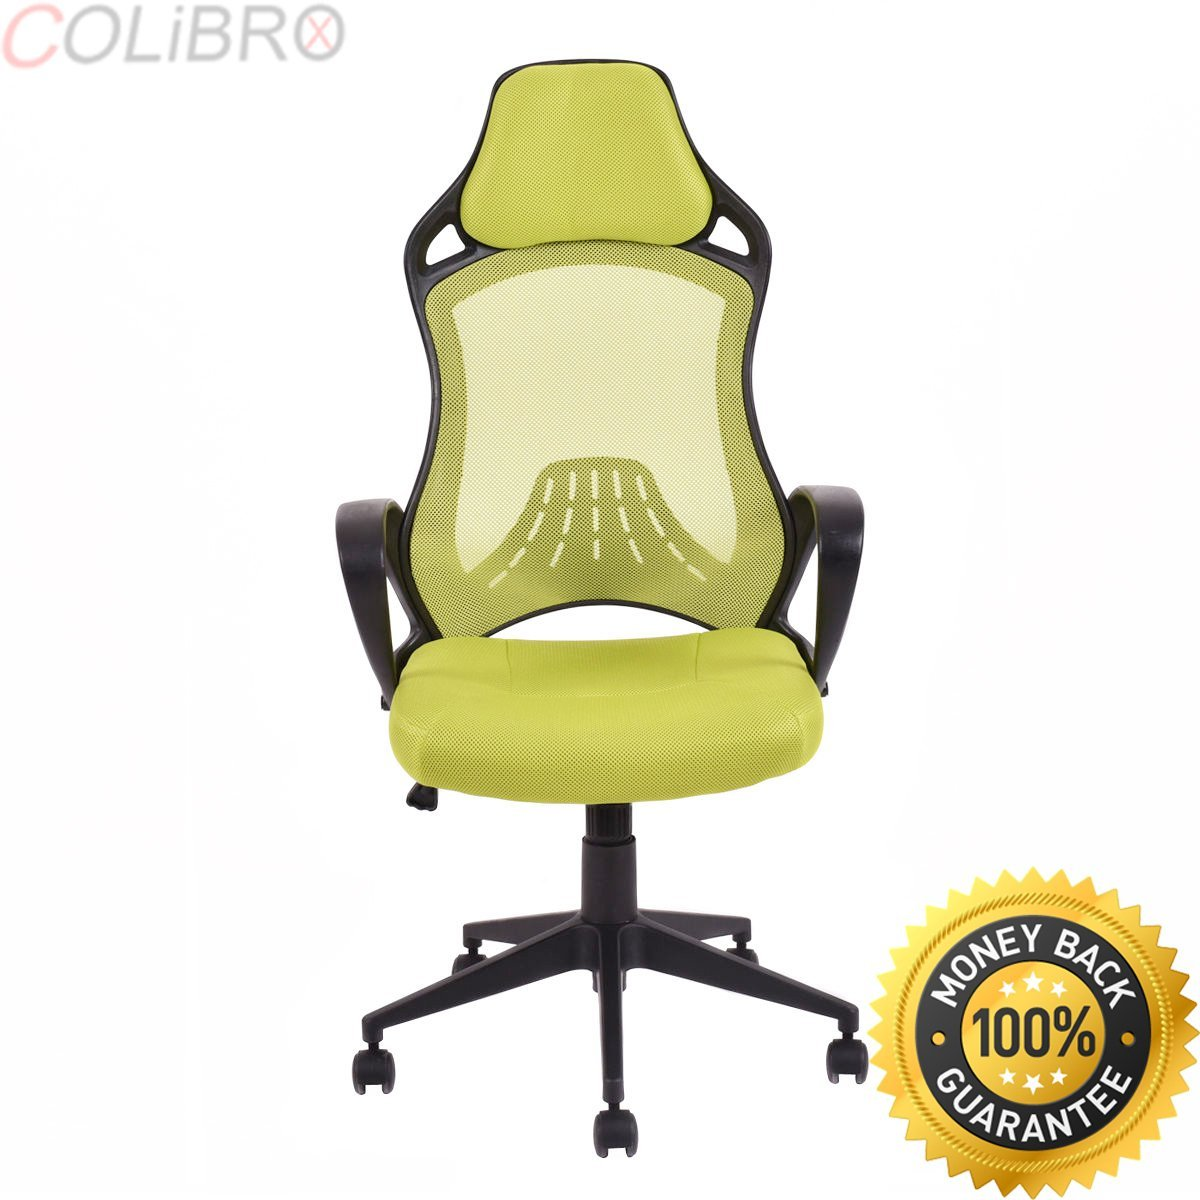 COLIBROX--Executive Racing Chair Mesh High Back Swivel Gaming Office Chair Desk Task Green. executive racing office chair pu leather swivel computer desk seat high-back. amazon gaming chair.